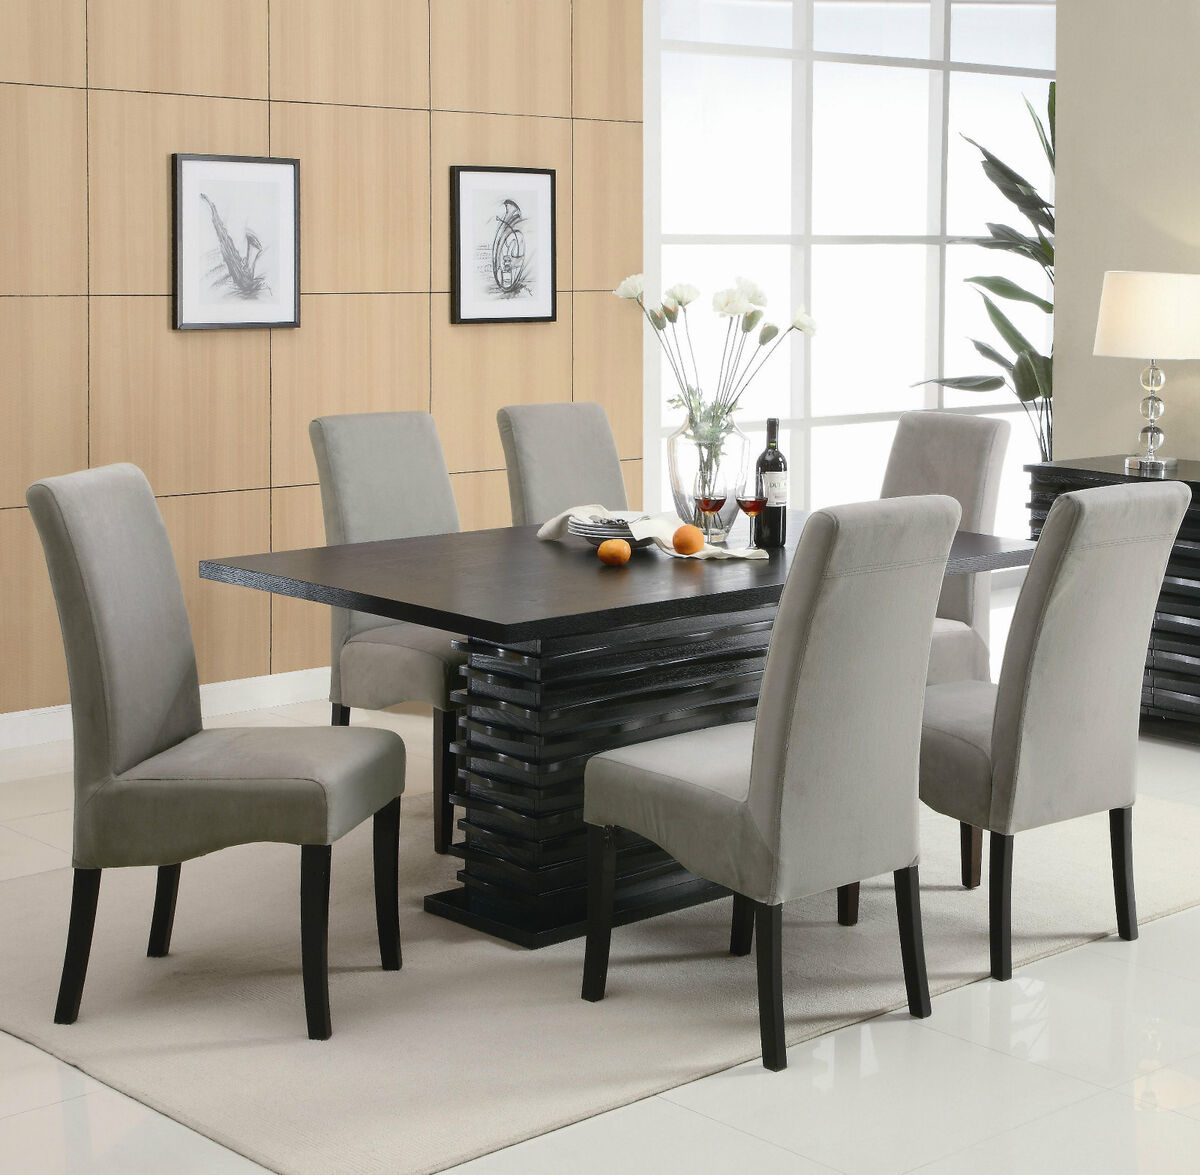 Dining table furniture contemporary dining table chairs - Dining room modern ...